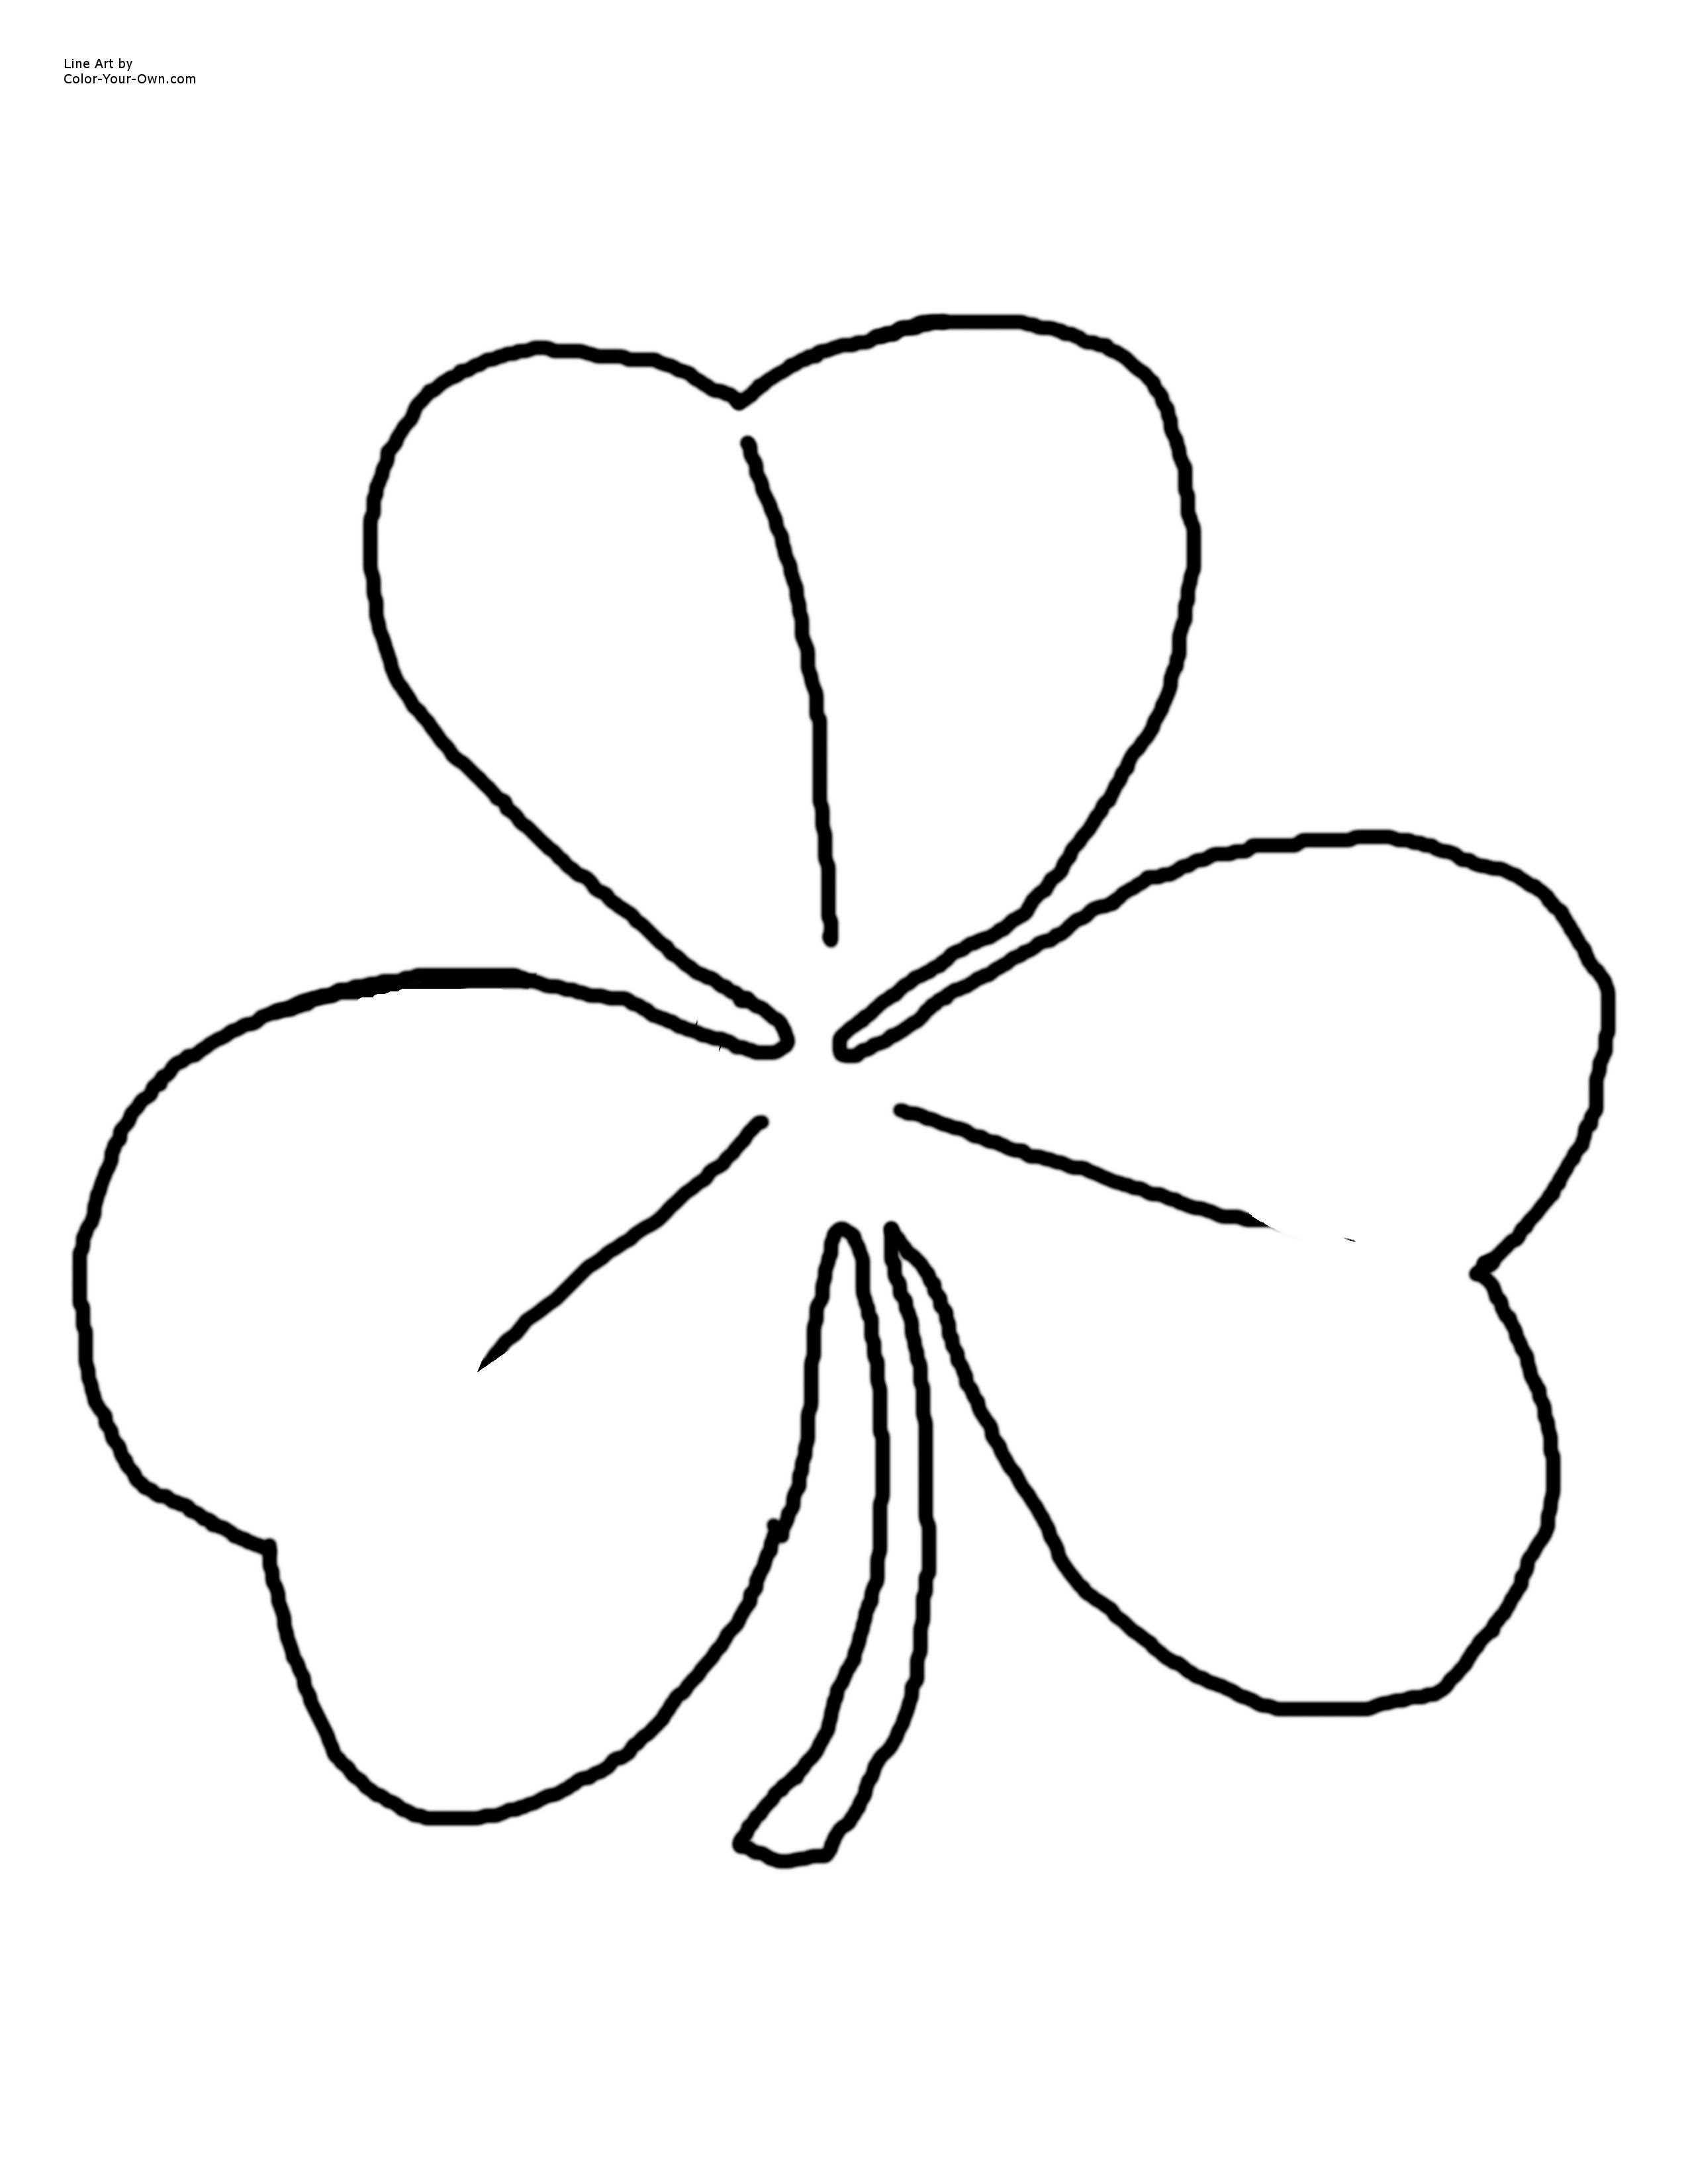 Shamrock Template Outline